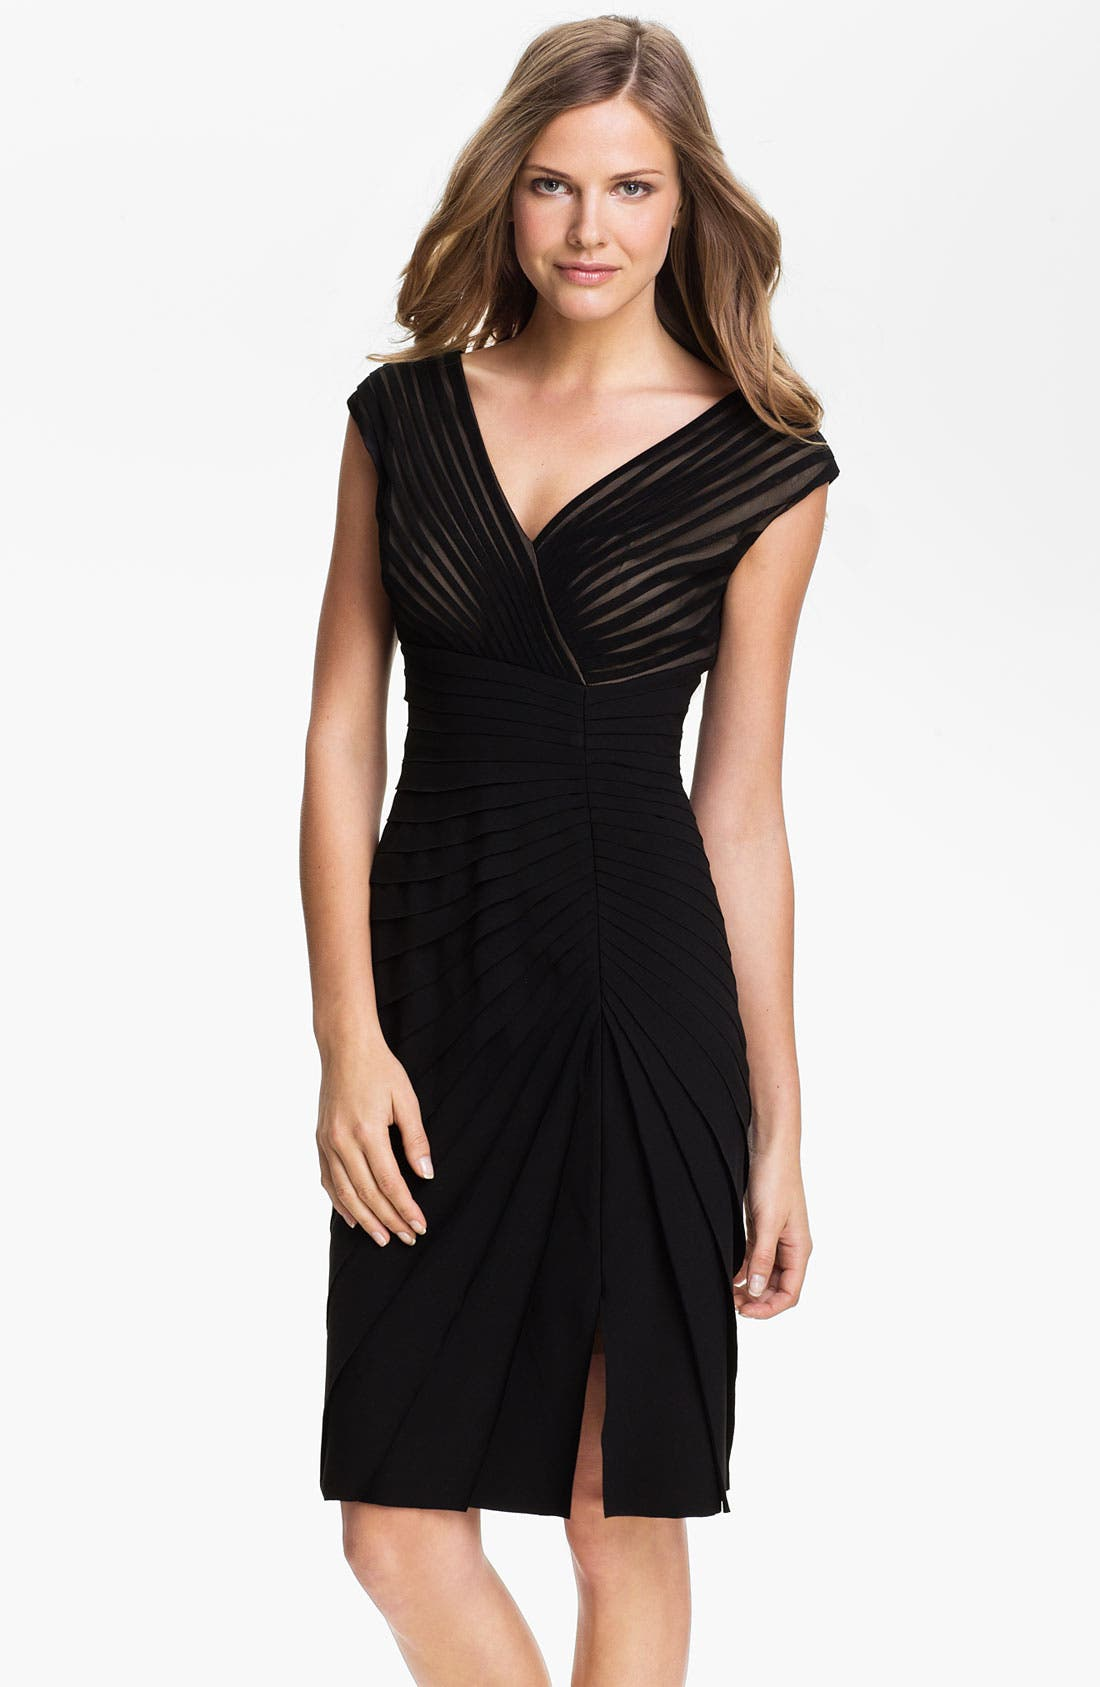 Alternate Image 1 Selected - Adrianna Papell Side Seam Pleated Sheath Dress (Petite)